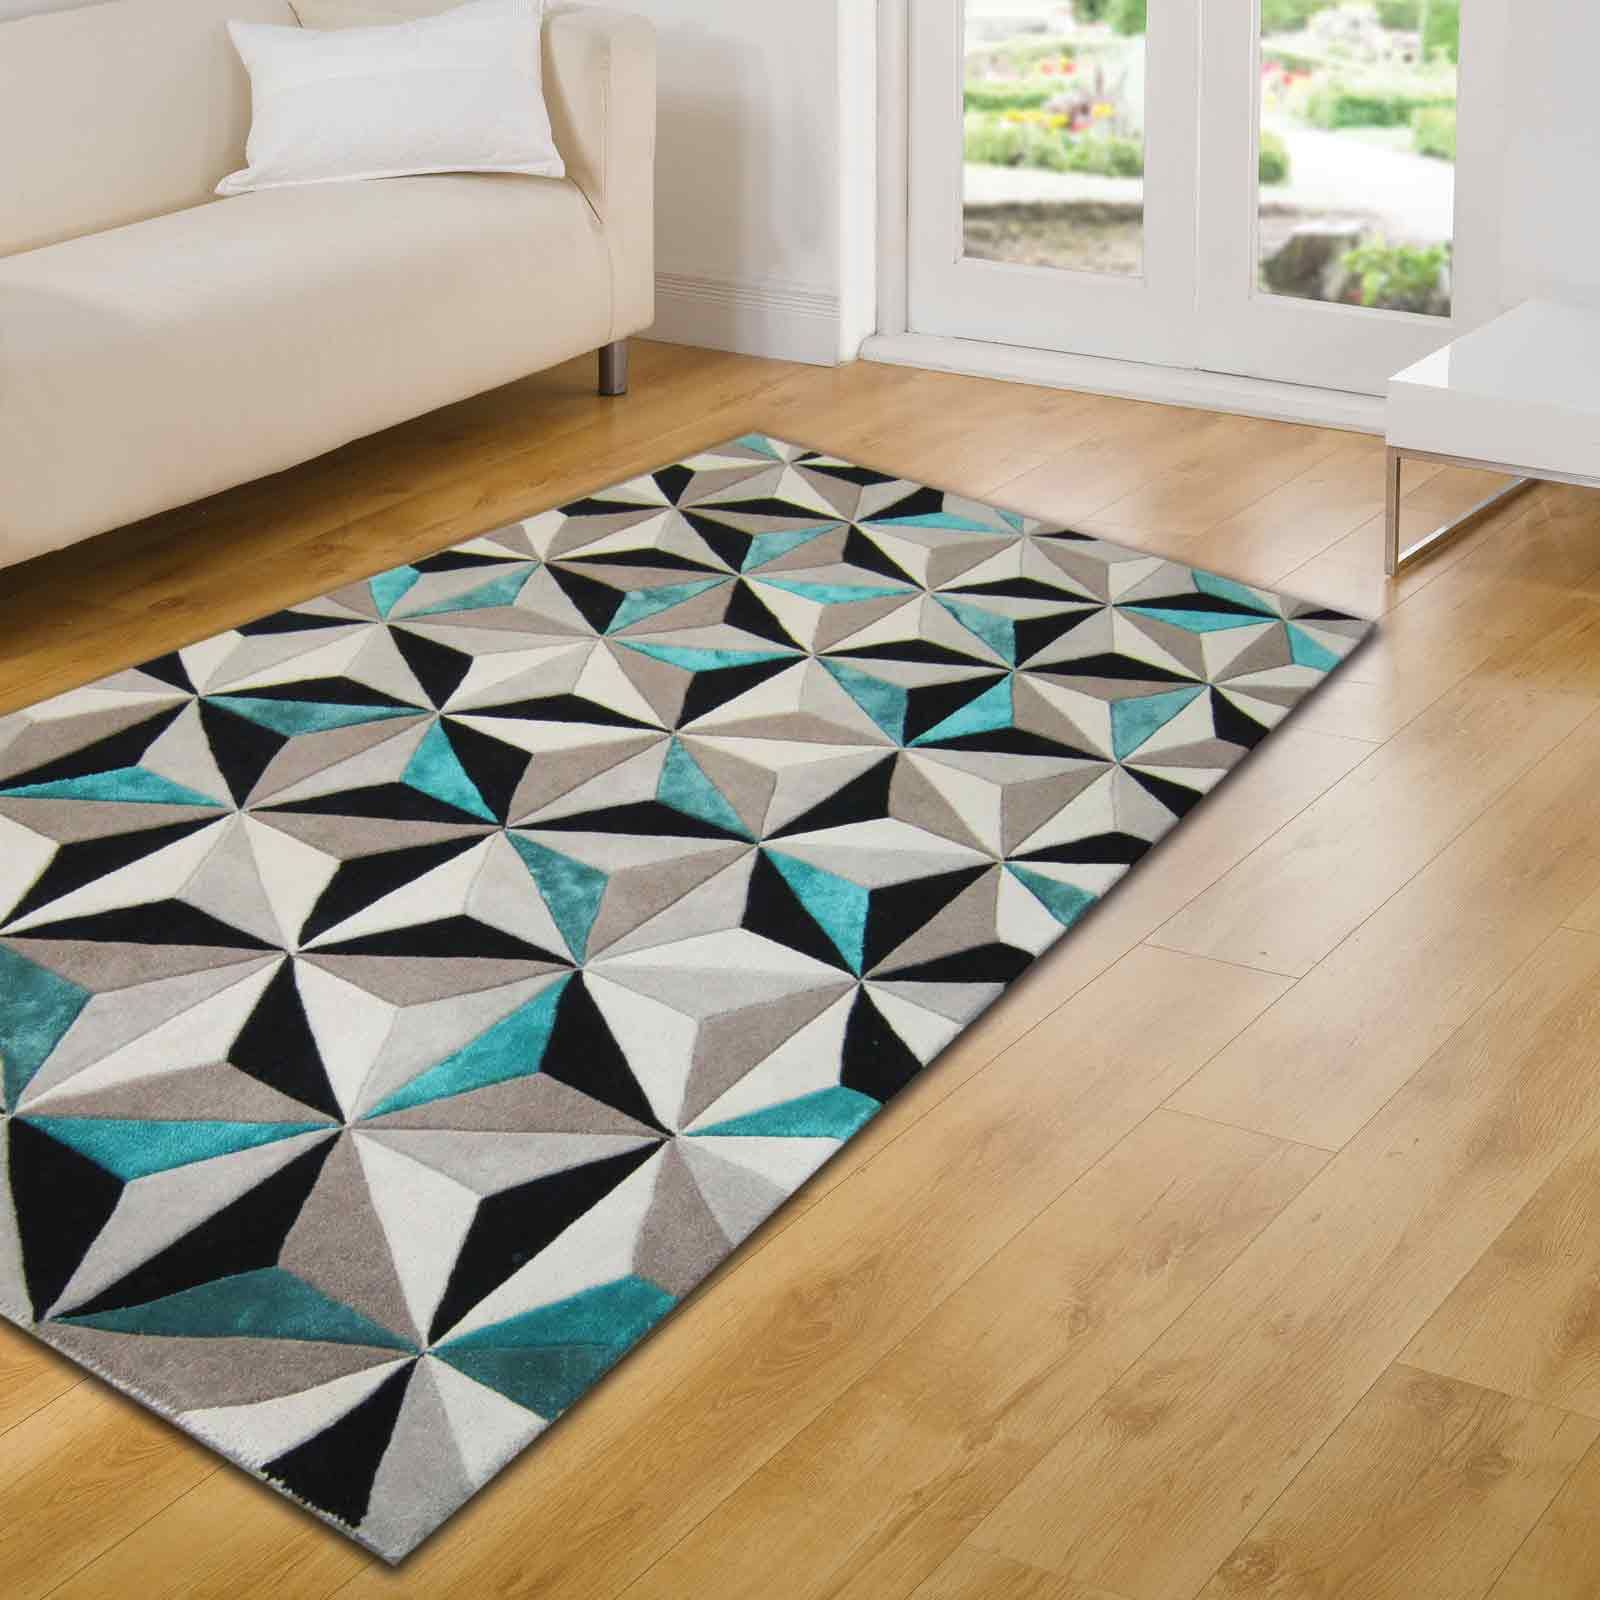 Carpet Runners Uk Voucher Code Staircarpetrunnersebay Id 6638074419 In 2020 White Moroccan Rugs Moroccan Rug Rugs